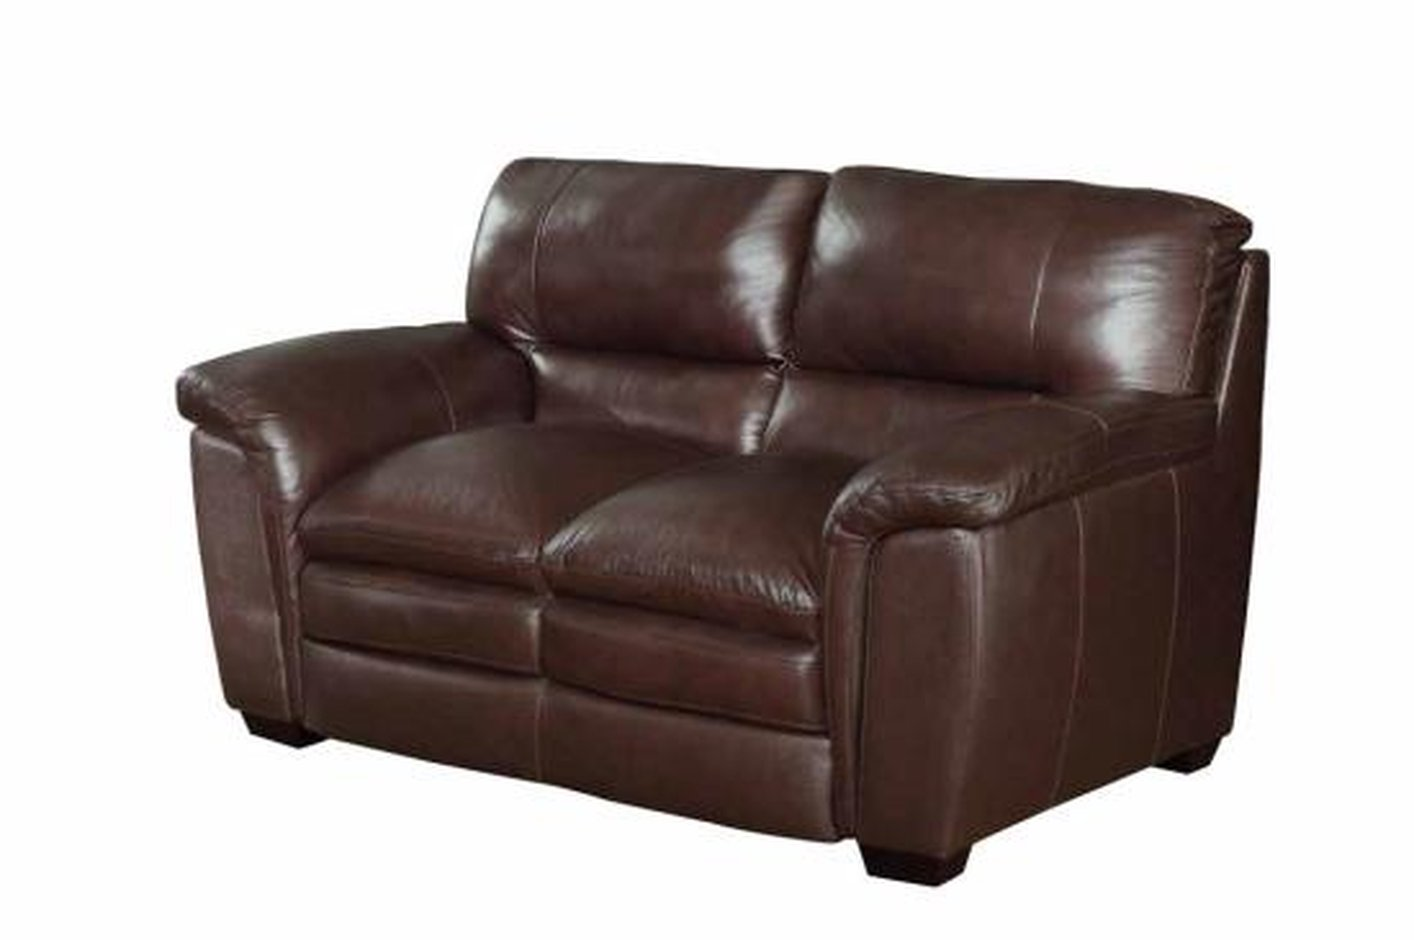 sw products sq sestino leather jennifer furniture chestnut loveseat ls